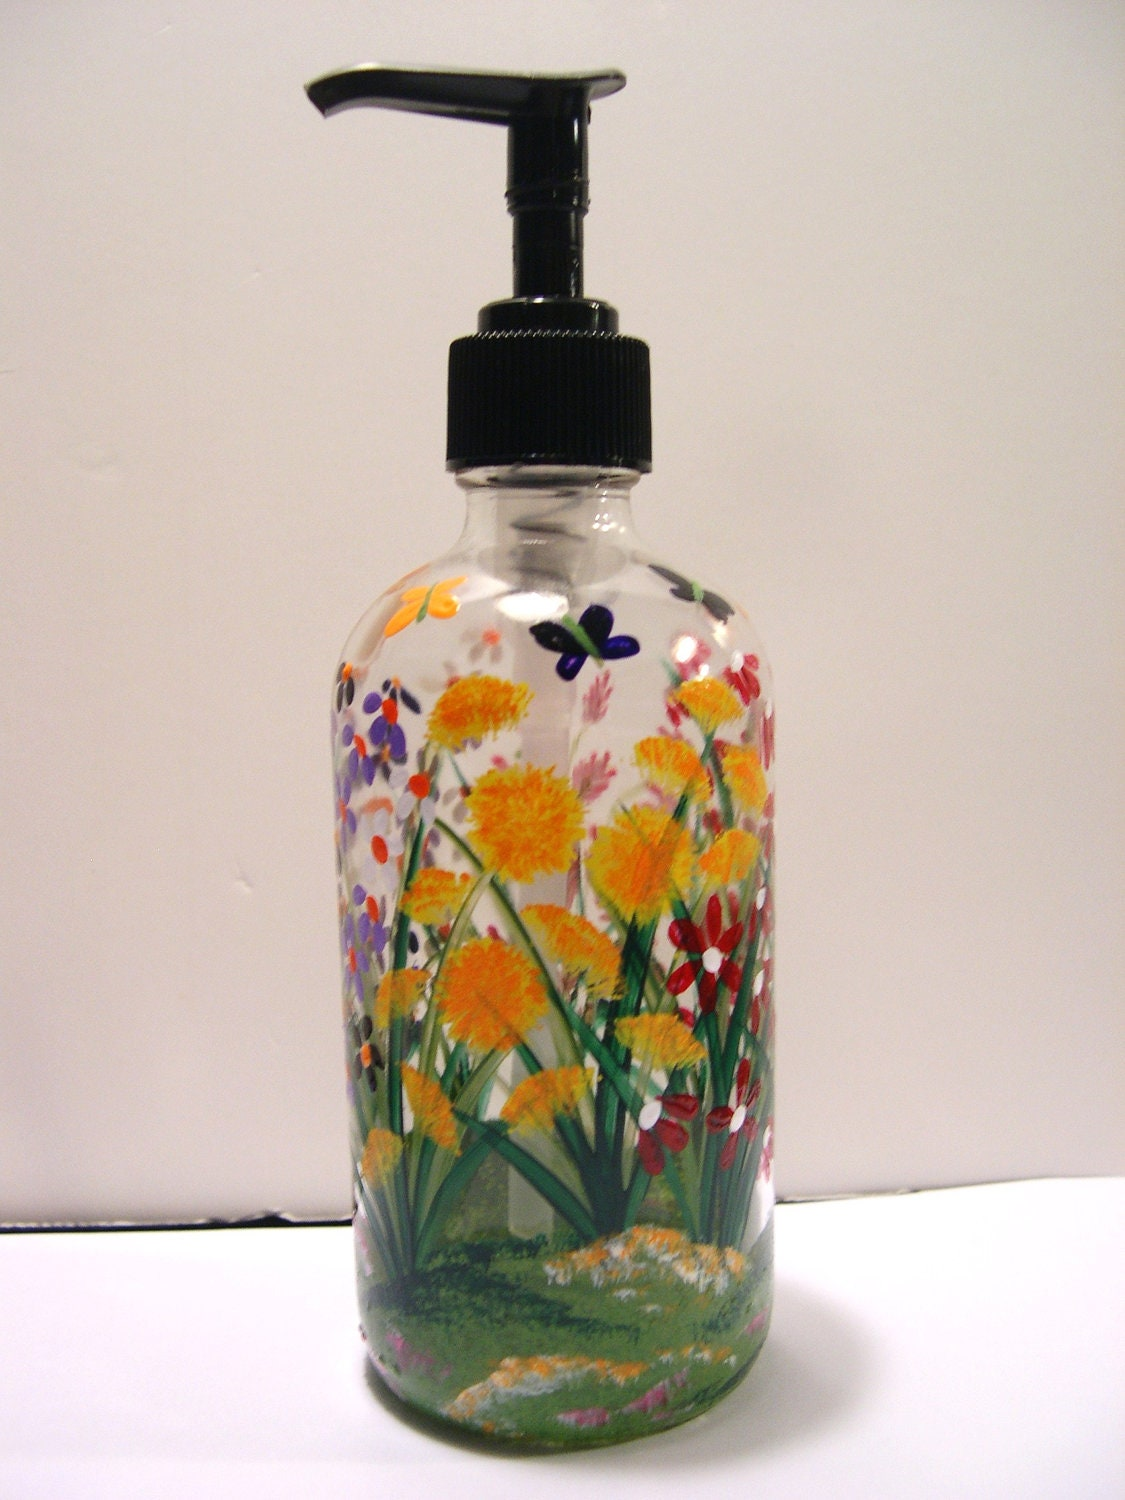 Hand Painted Glass Soap Dispenser Bottle With Hand Pump Wild